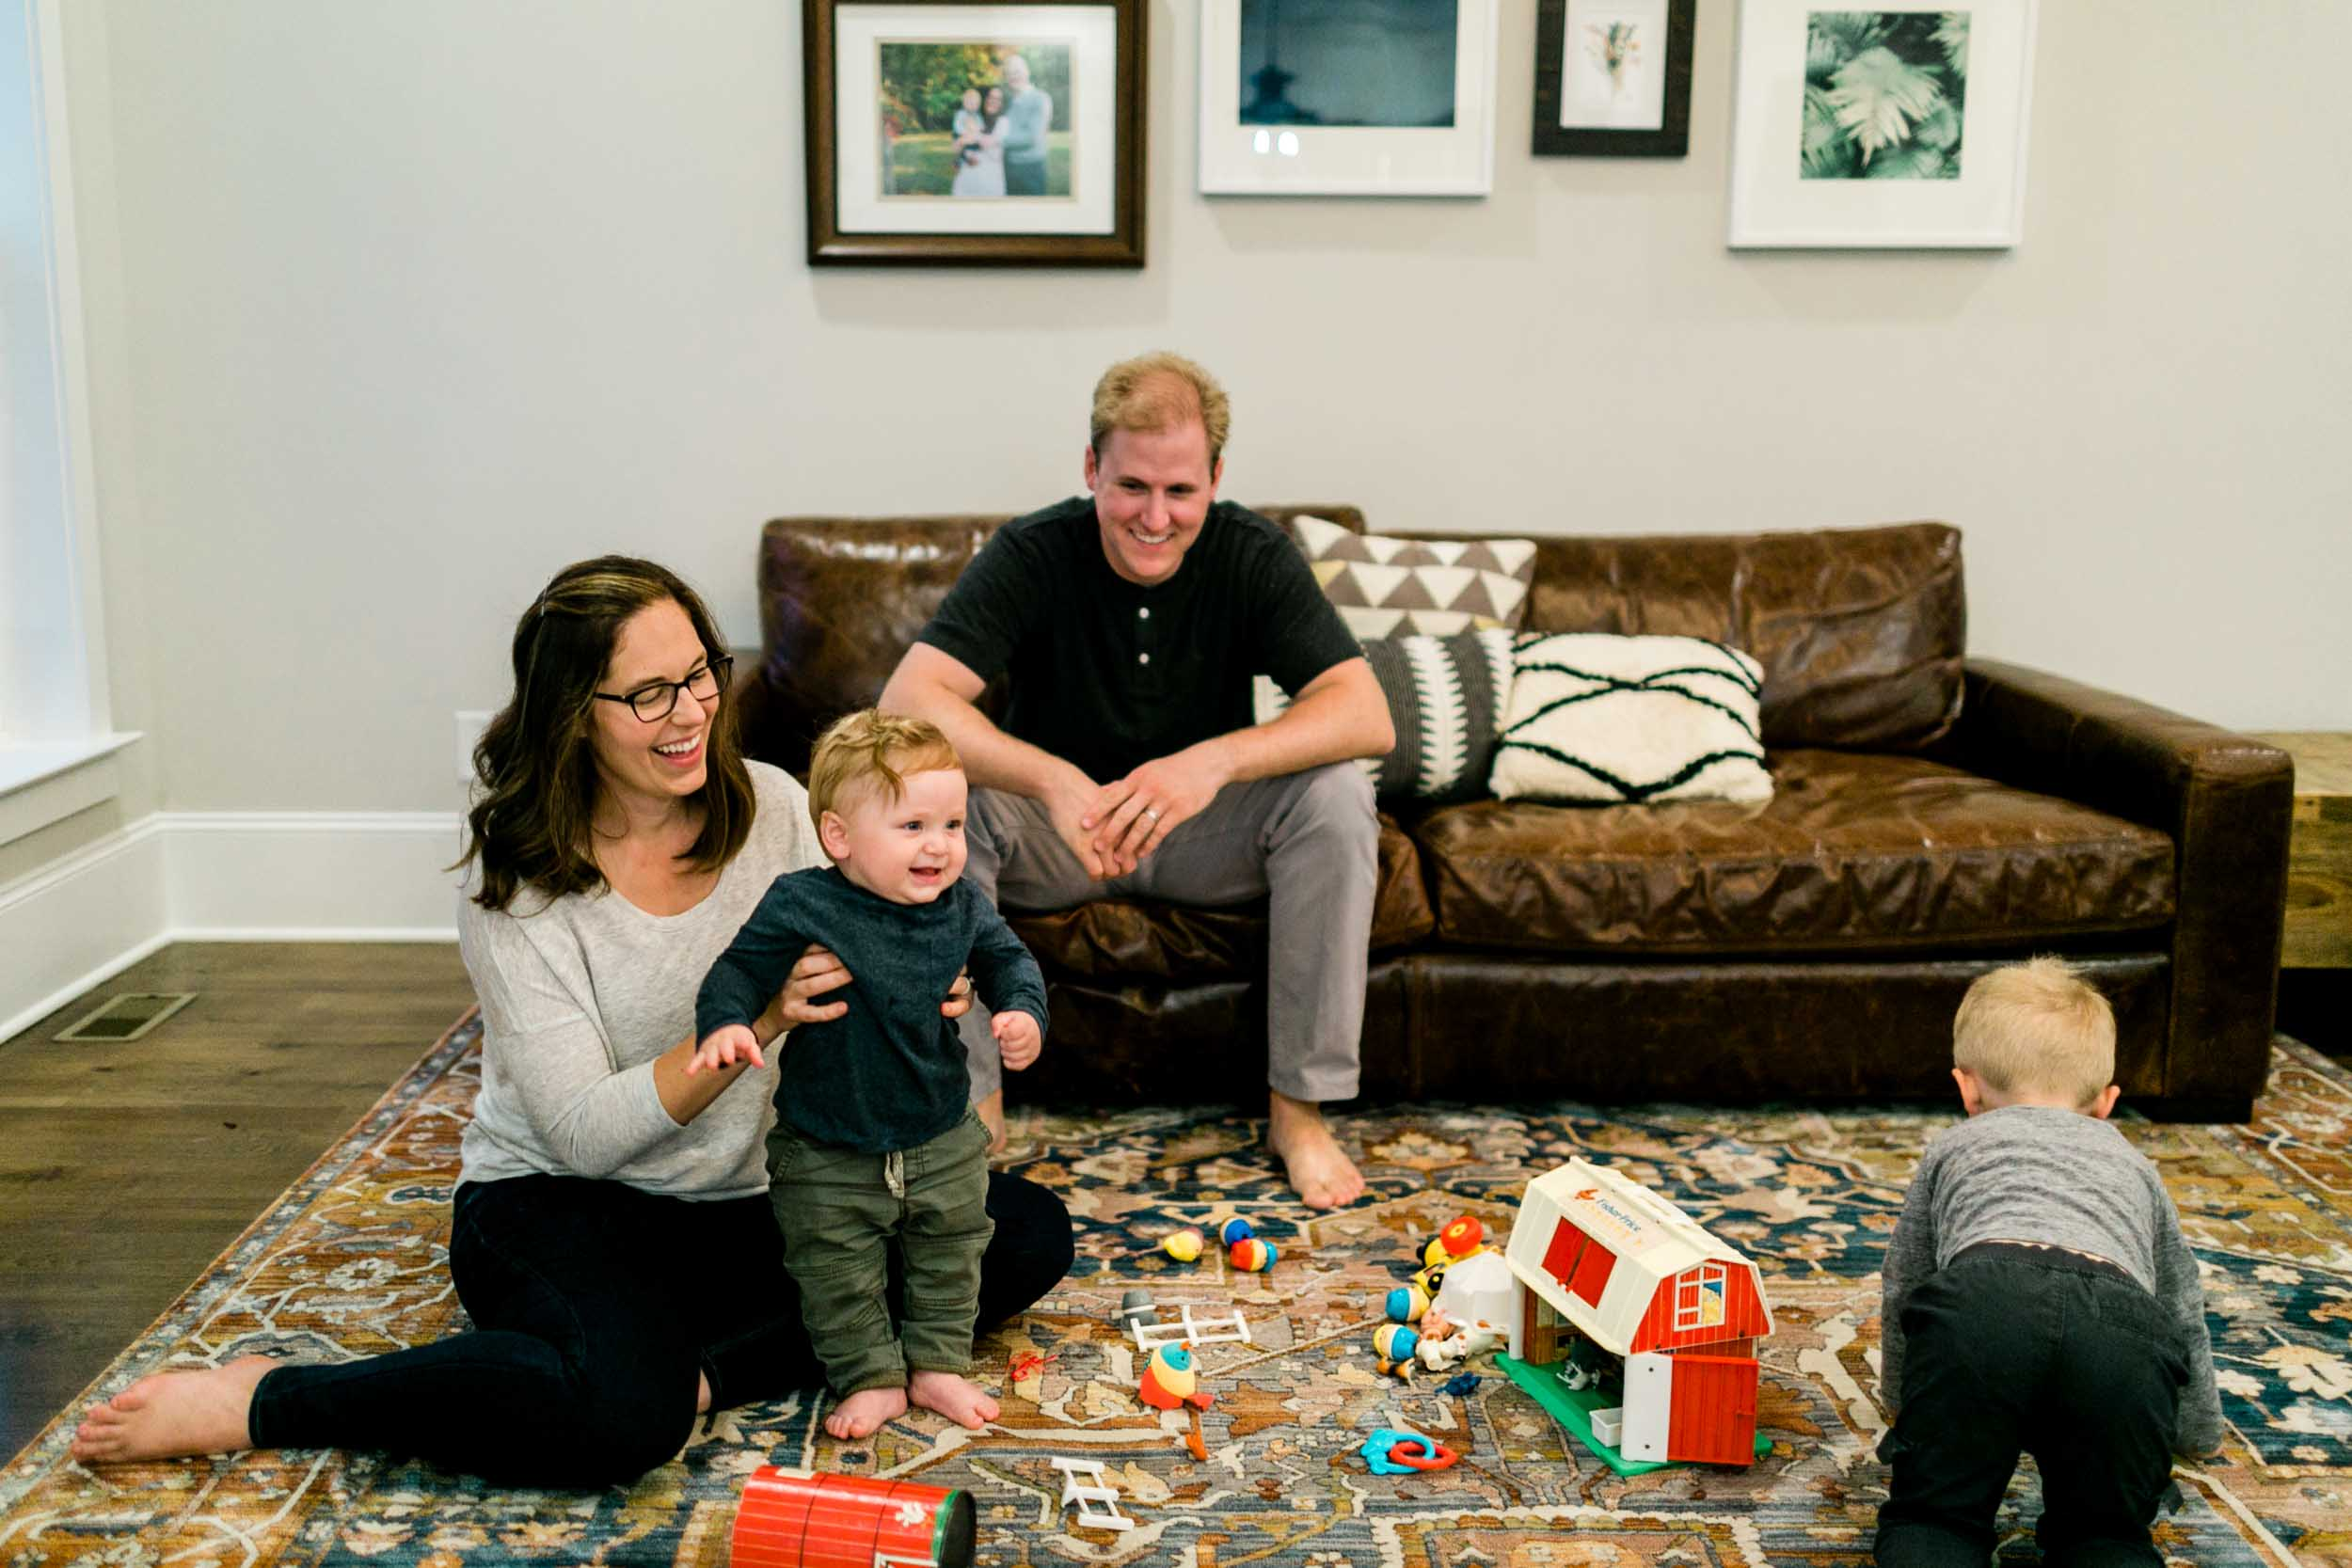 Family and children playing together at home | Raleigh Family Photographer | By G. Lin Photography